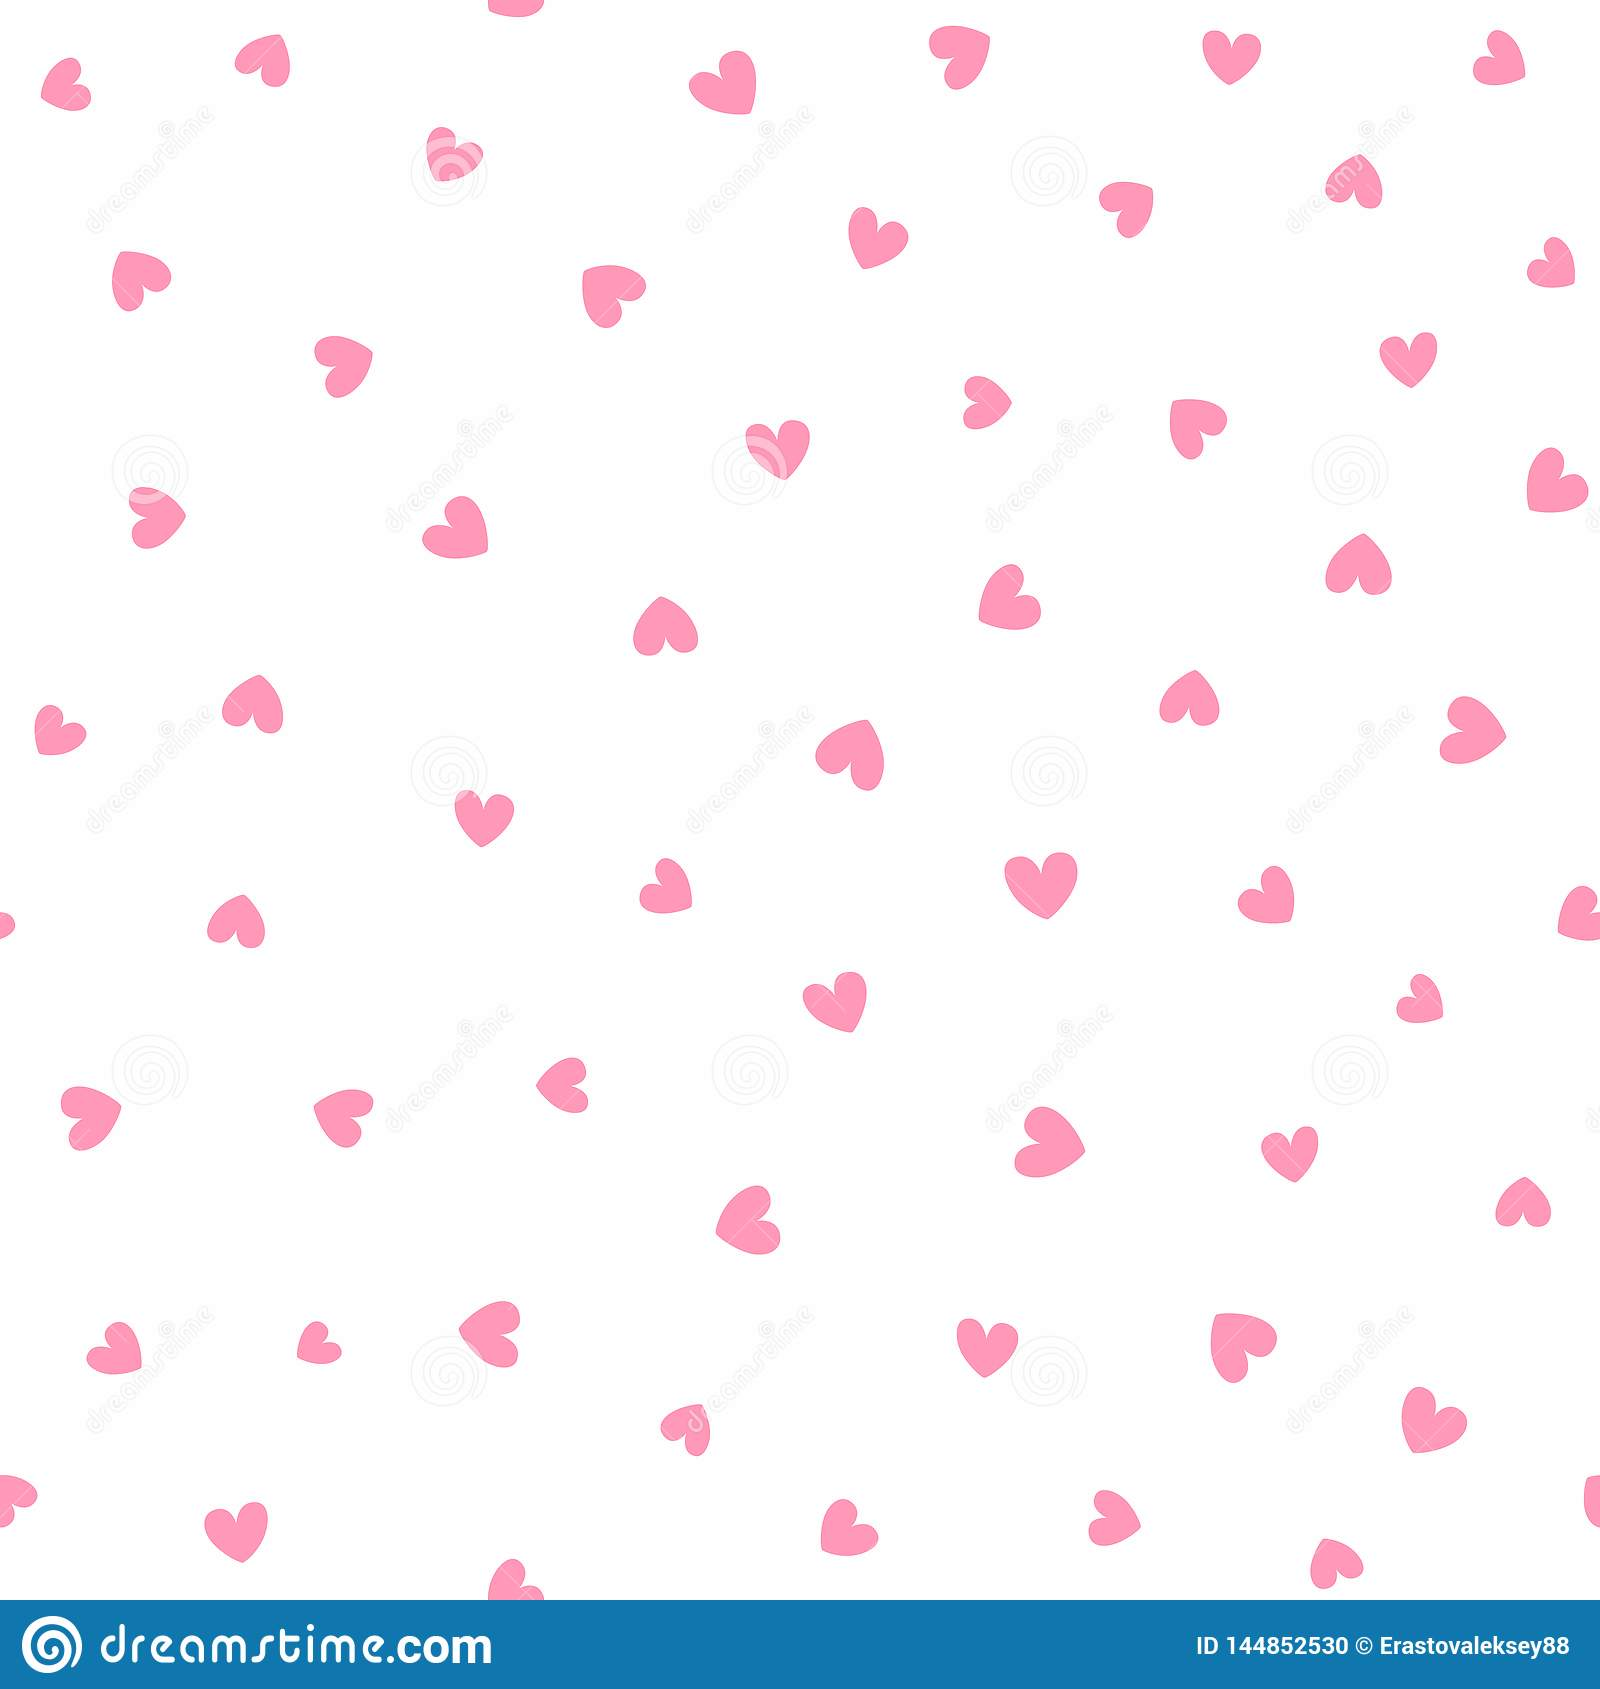 Seamless pattern with scattered stars. Romantic vector illustration.